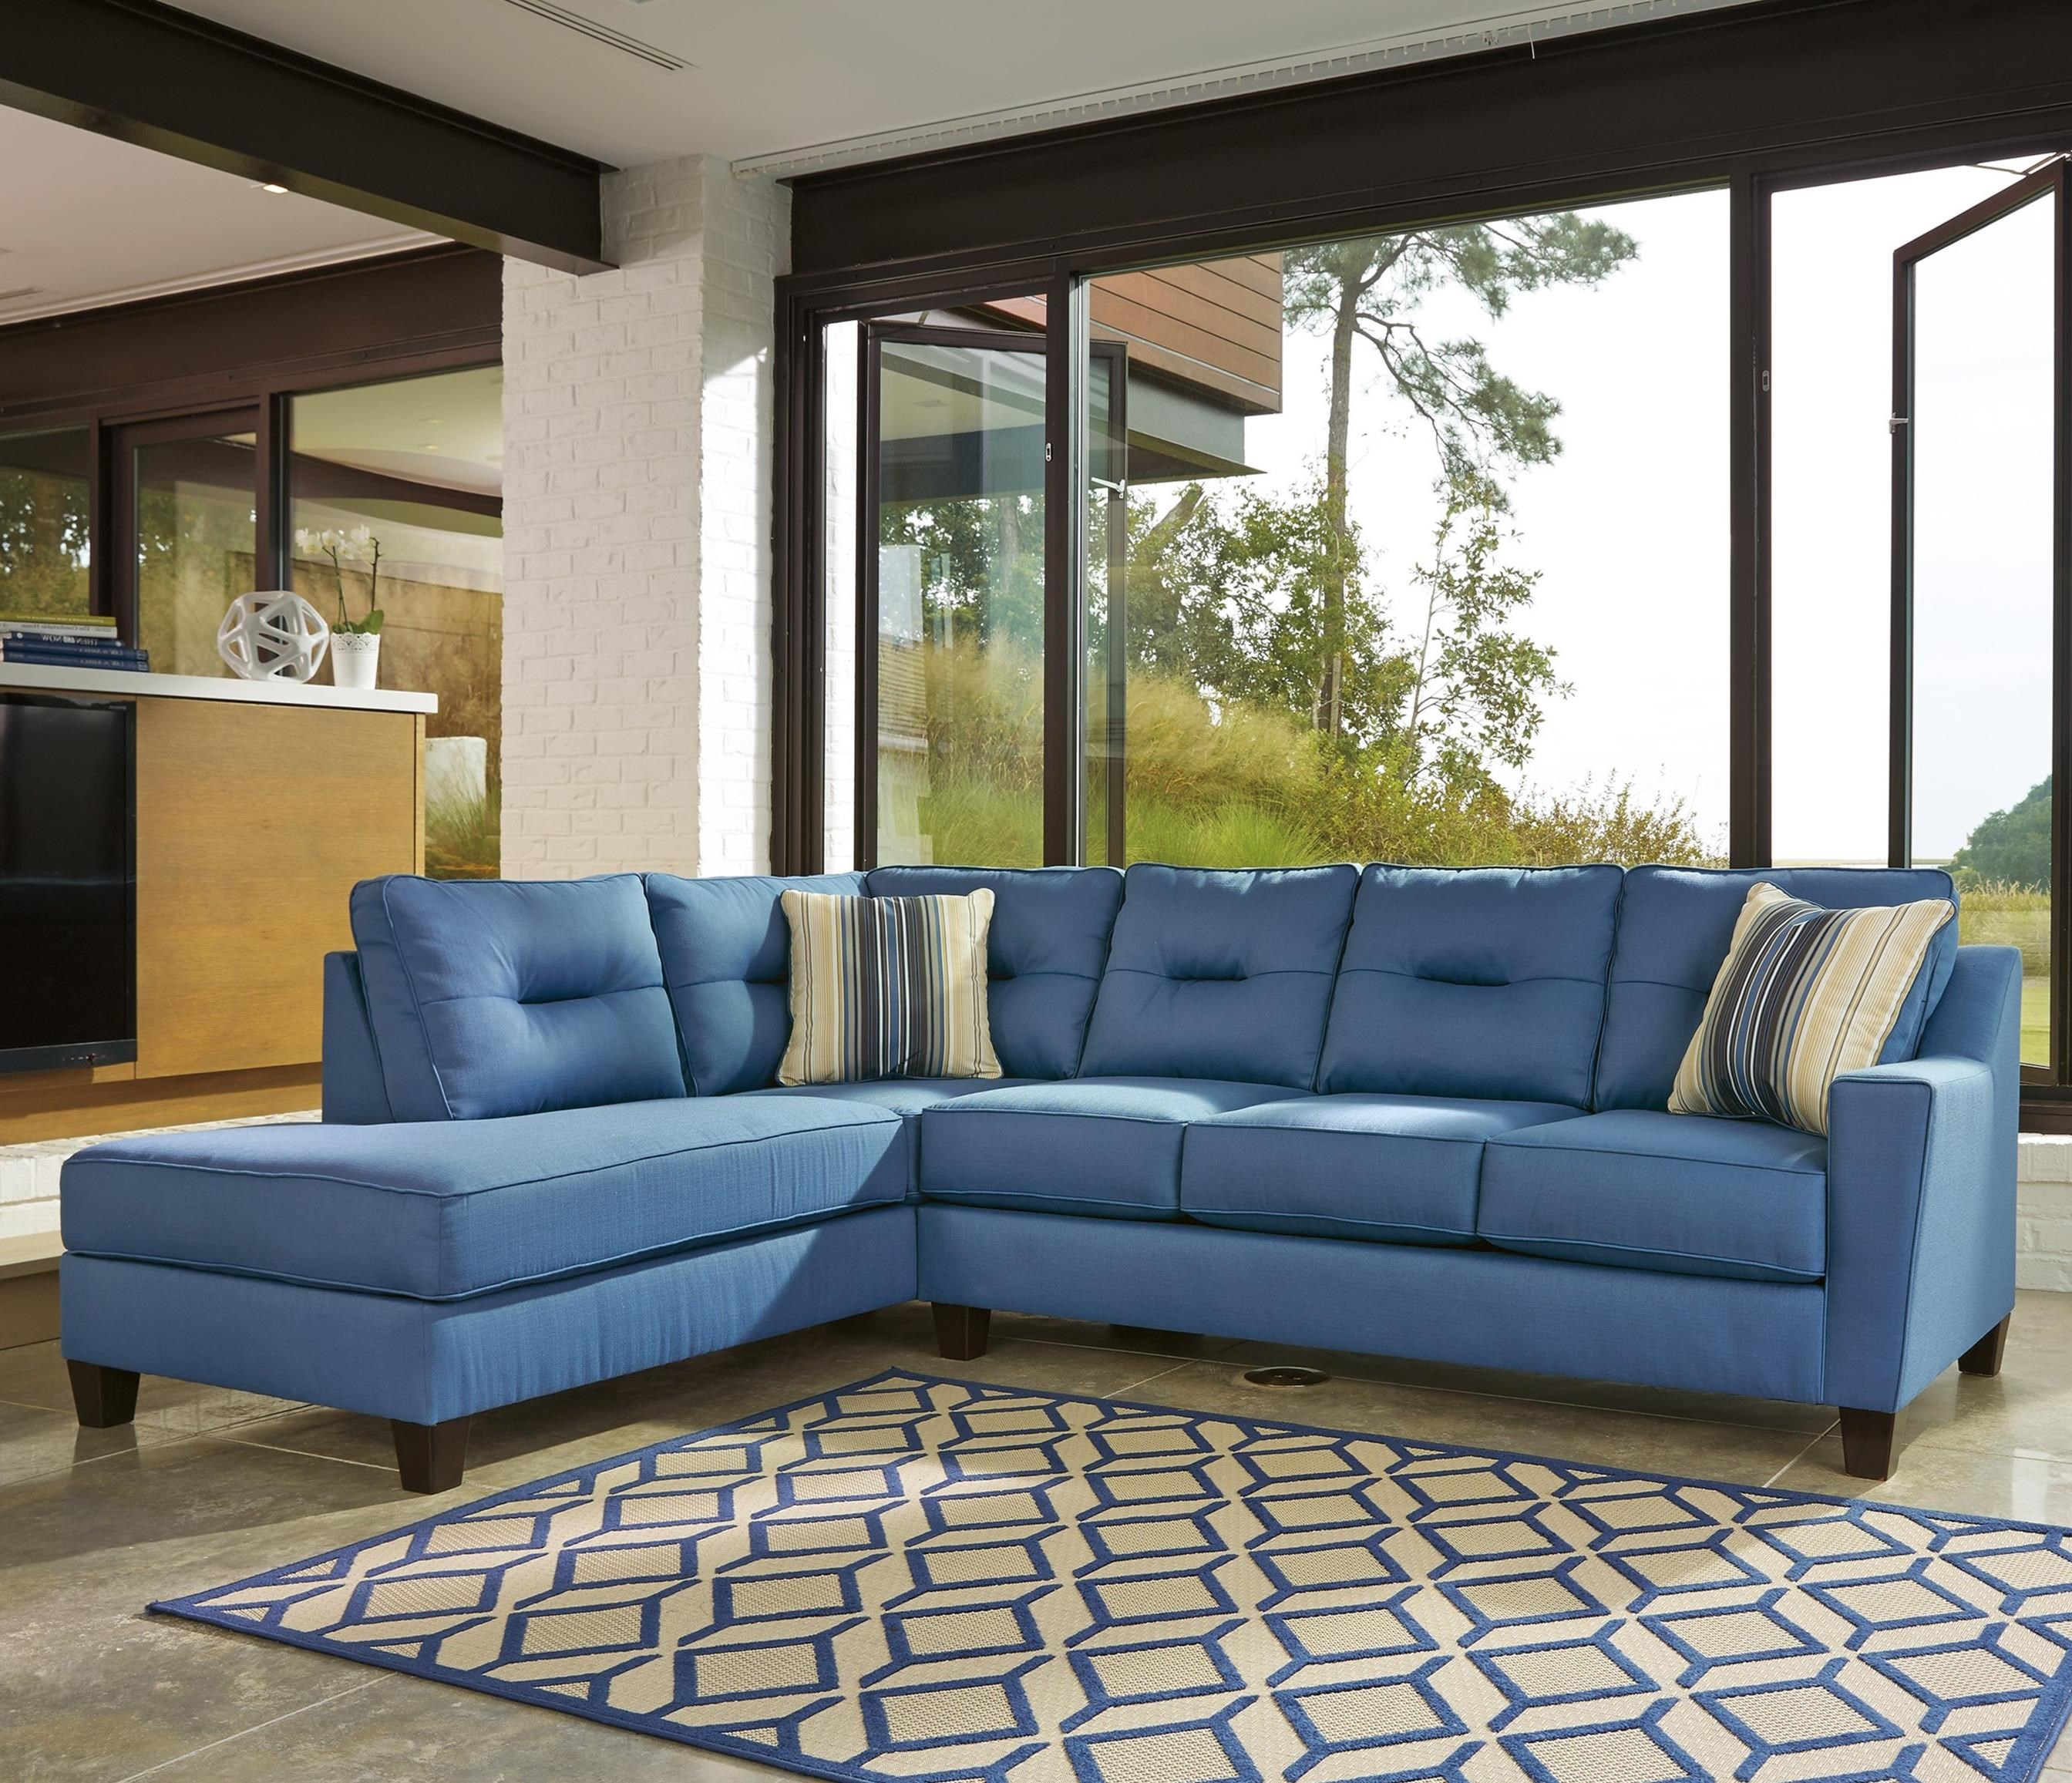 Benchcraft Kirwin Nuvella Sectional with Sleeper Sofa & Left